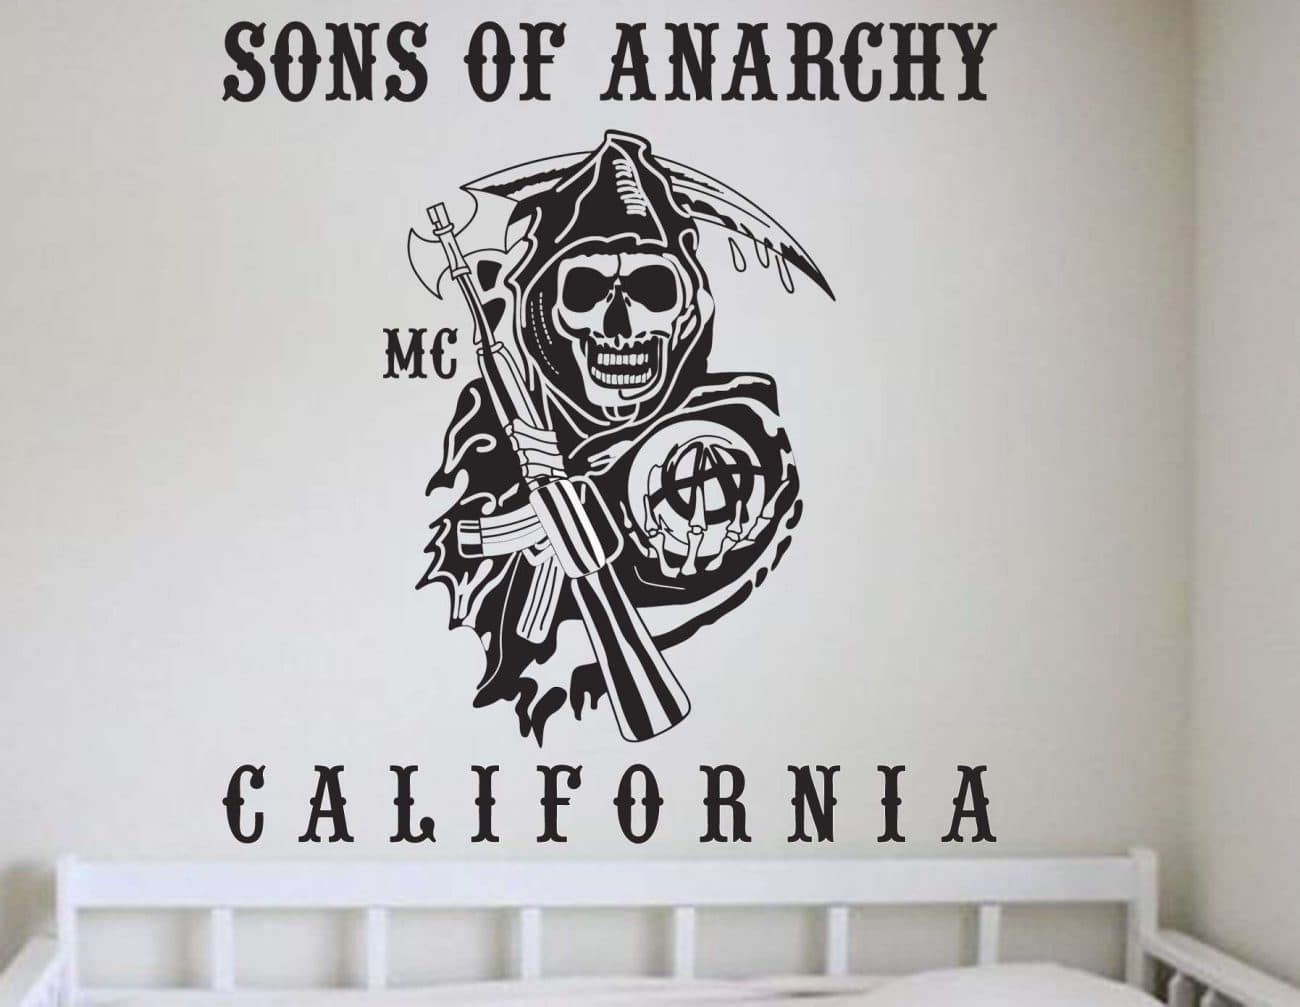 Sons of anarchy wall art decal